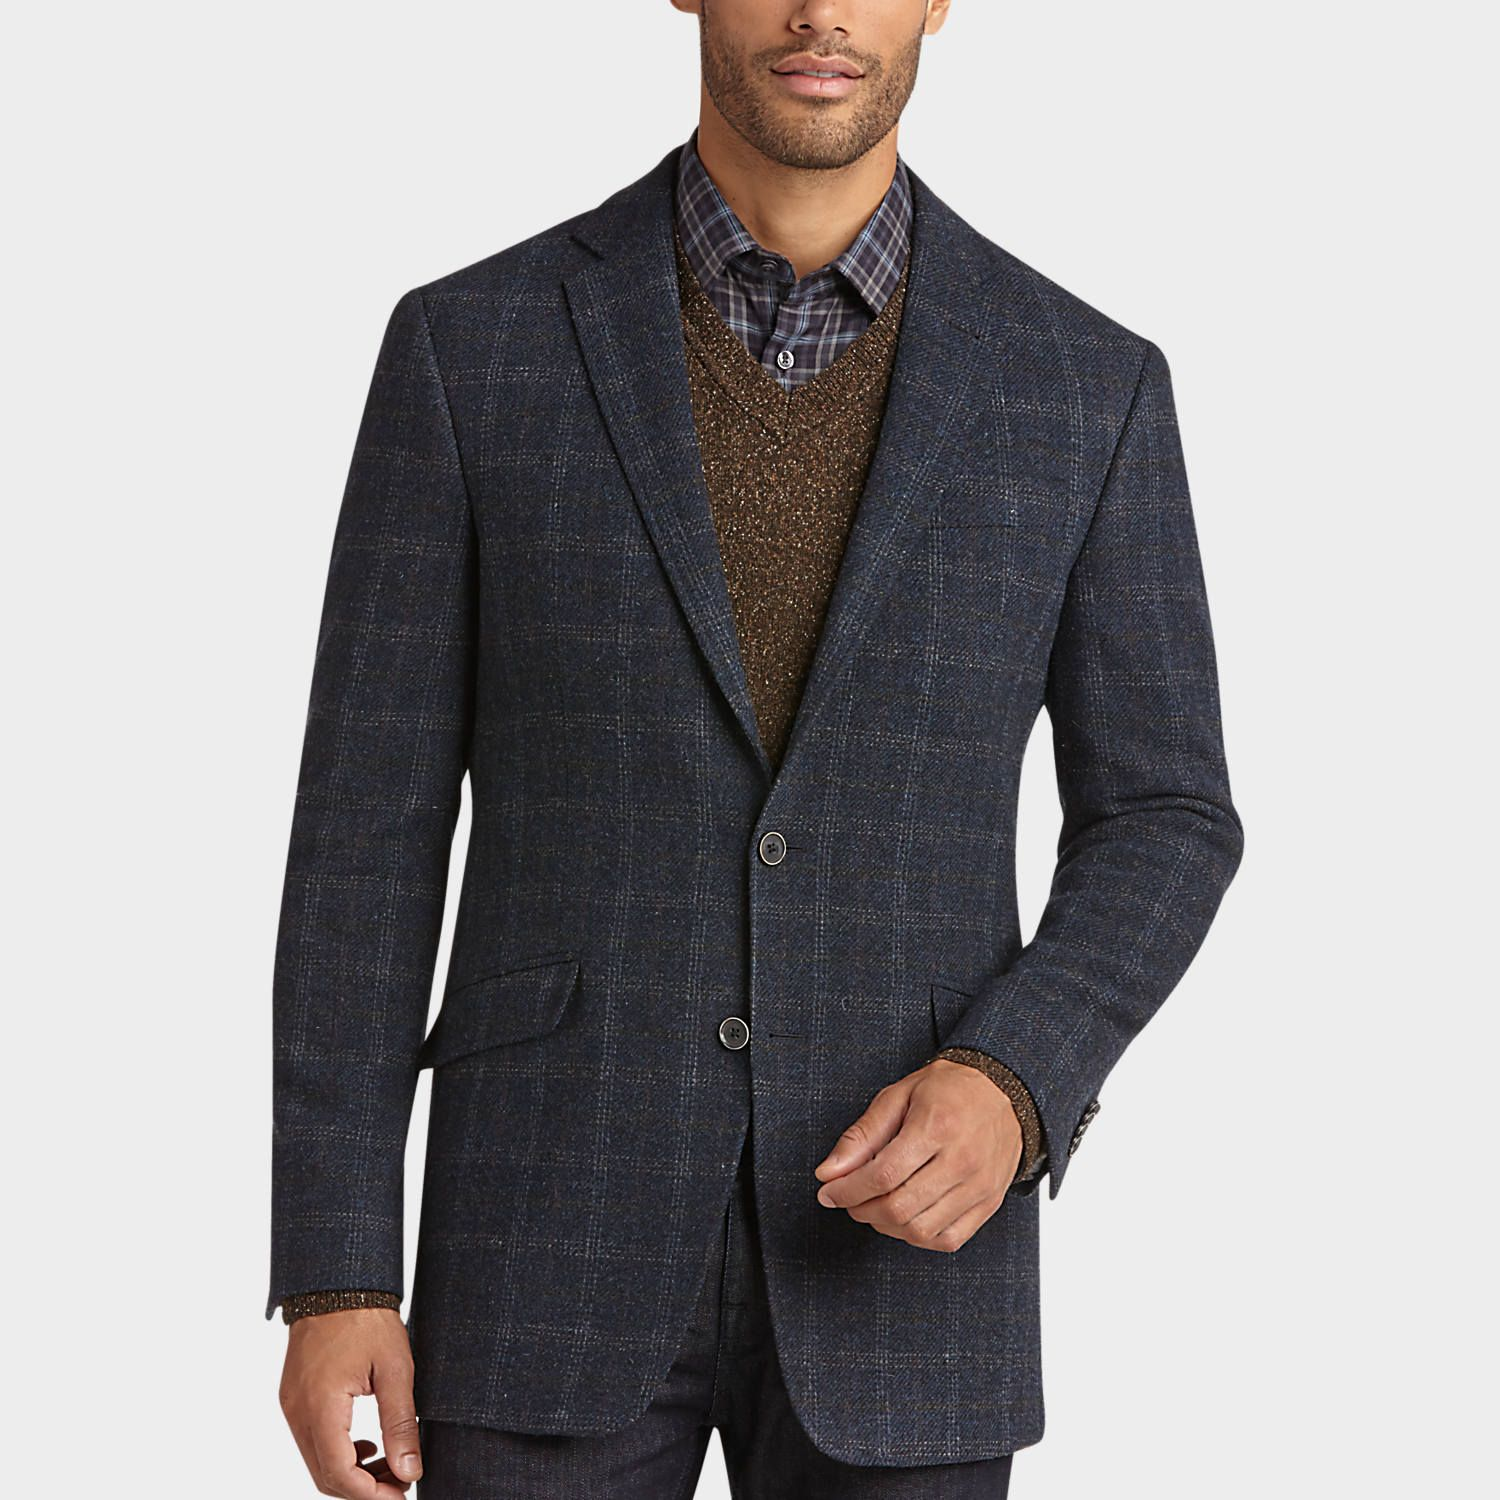 Buy a JOE by Joseph Abboud Blue Plaid Slim Fit Sport Coat and ...